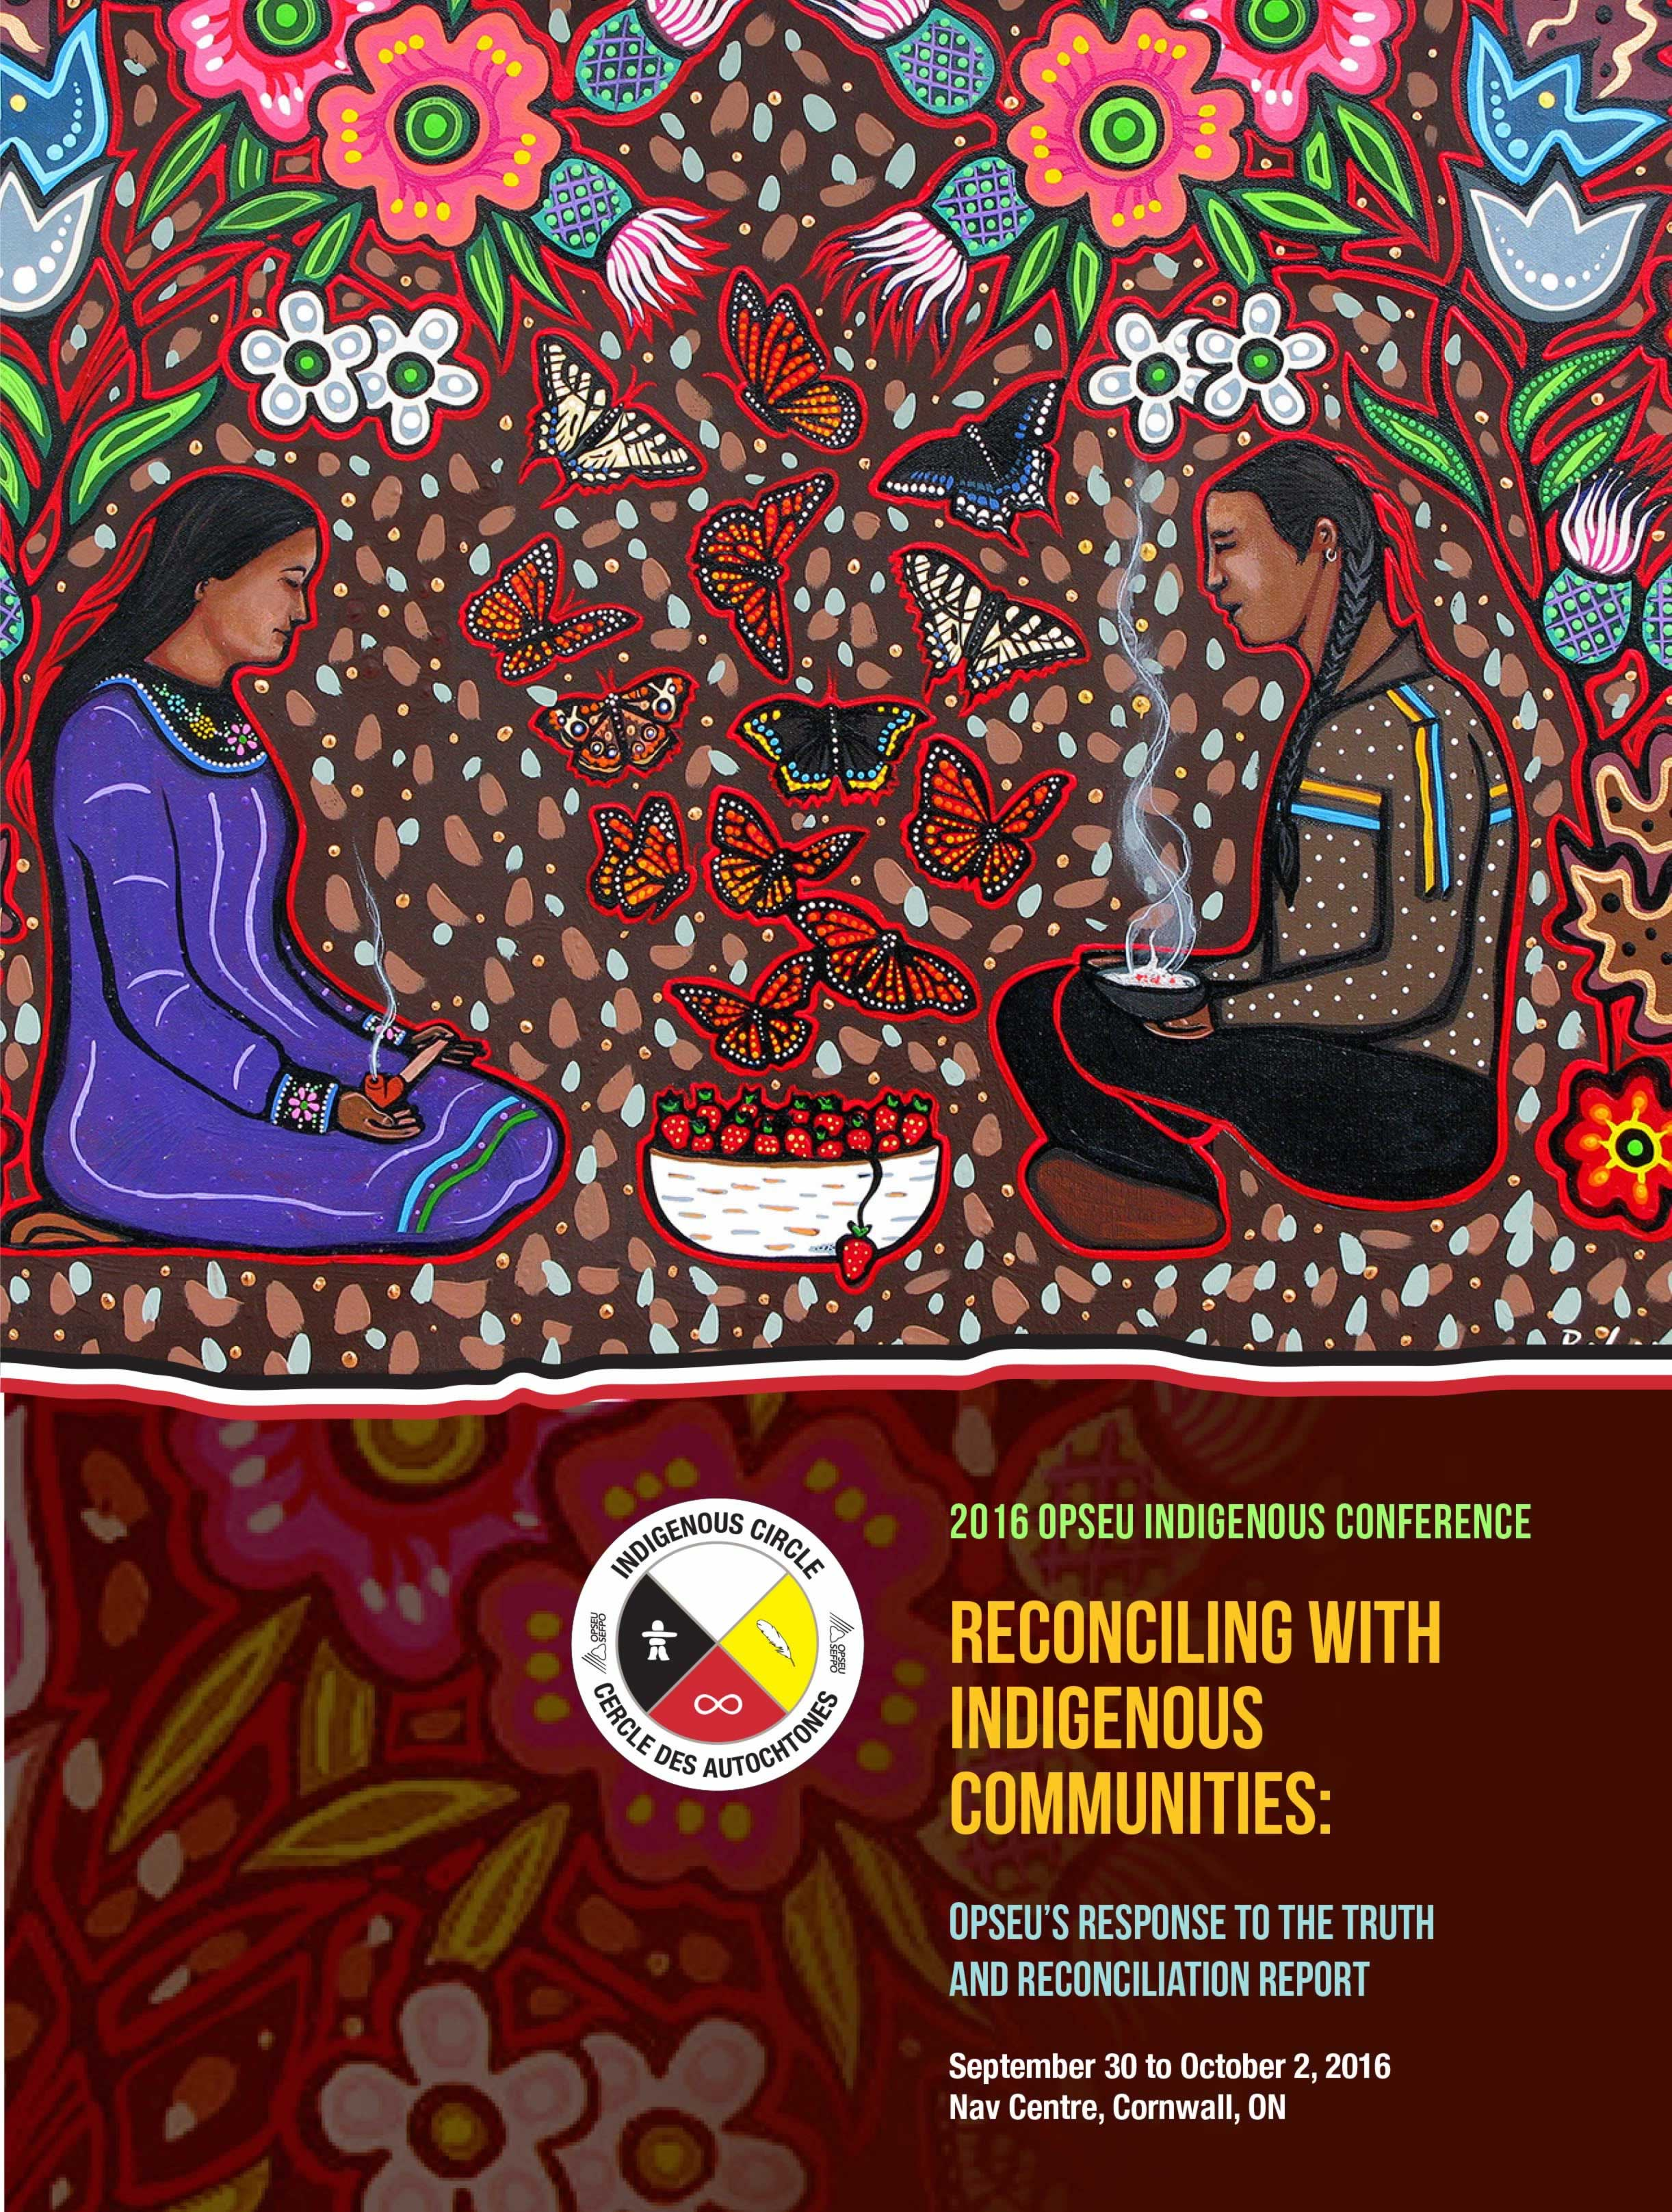 2016 OPSEU Indigenous Conference: Reconciling With Indigenous Communities.